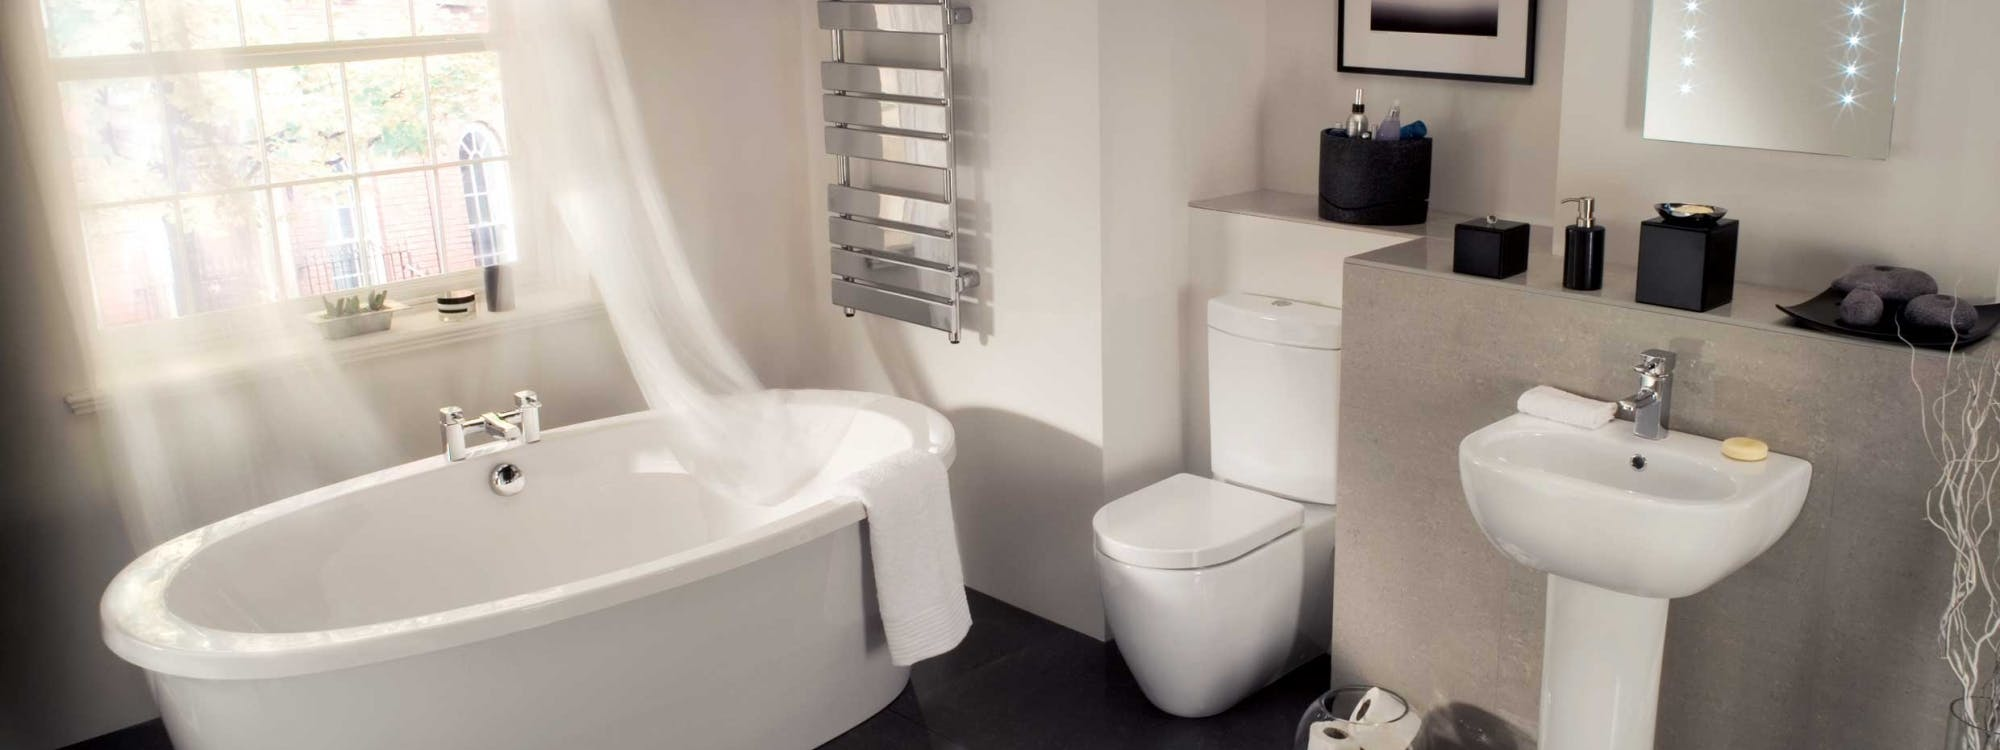 modern bathrooms - designed, supplied & installed